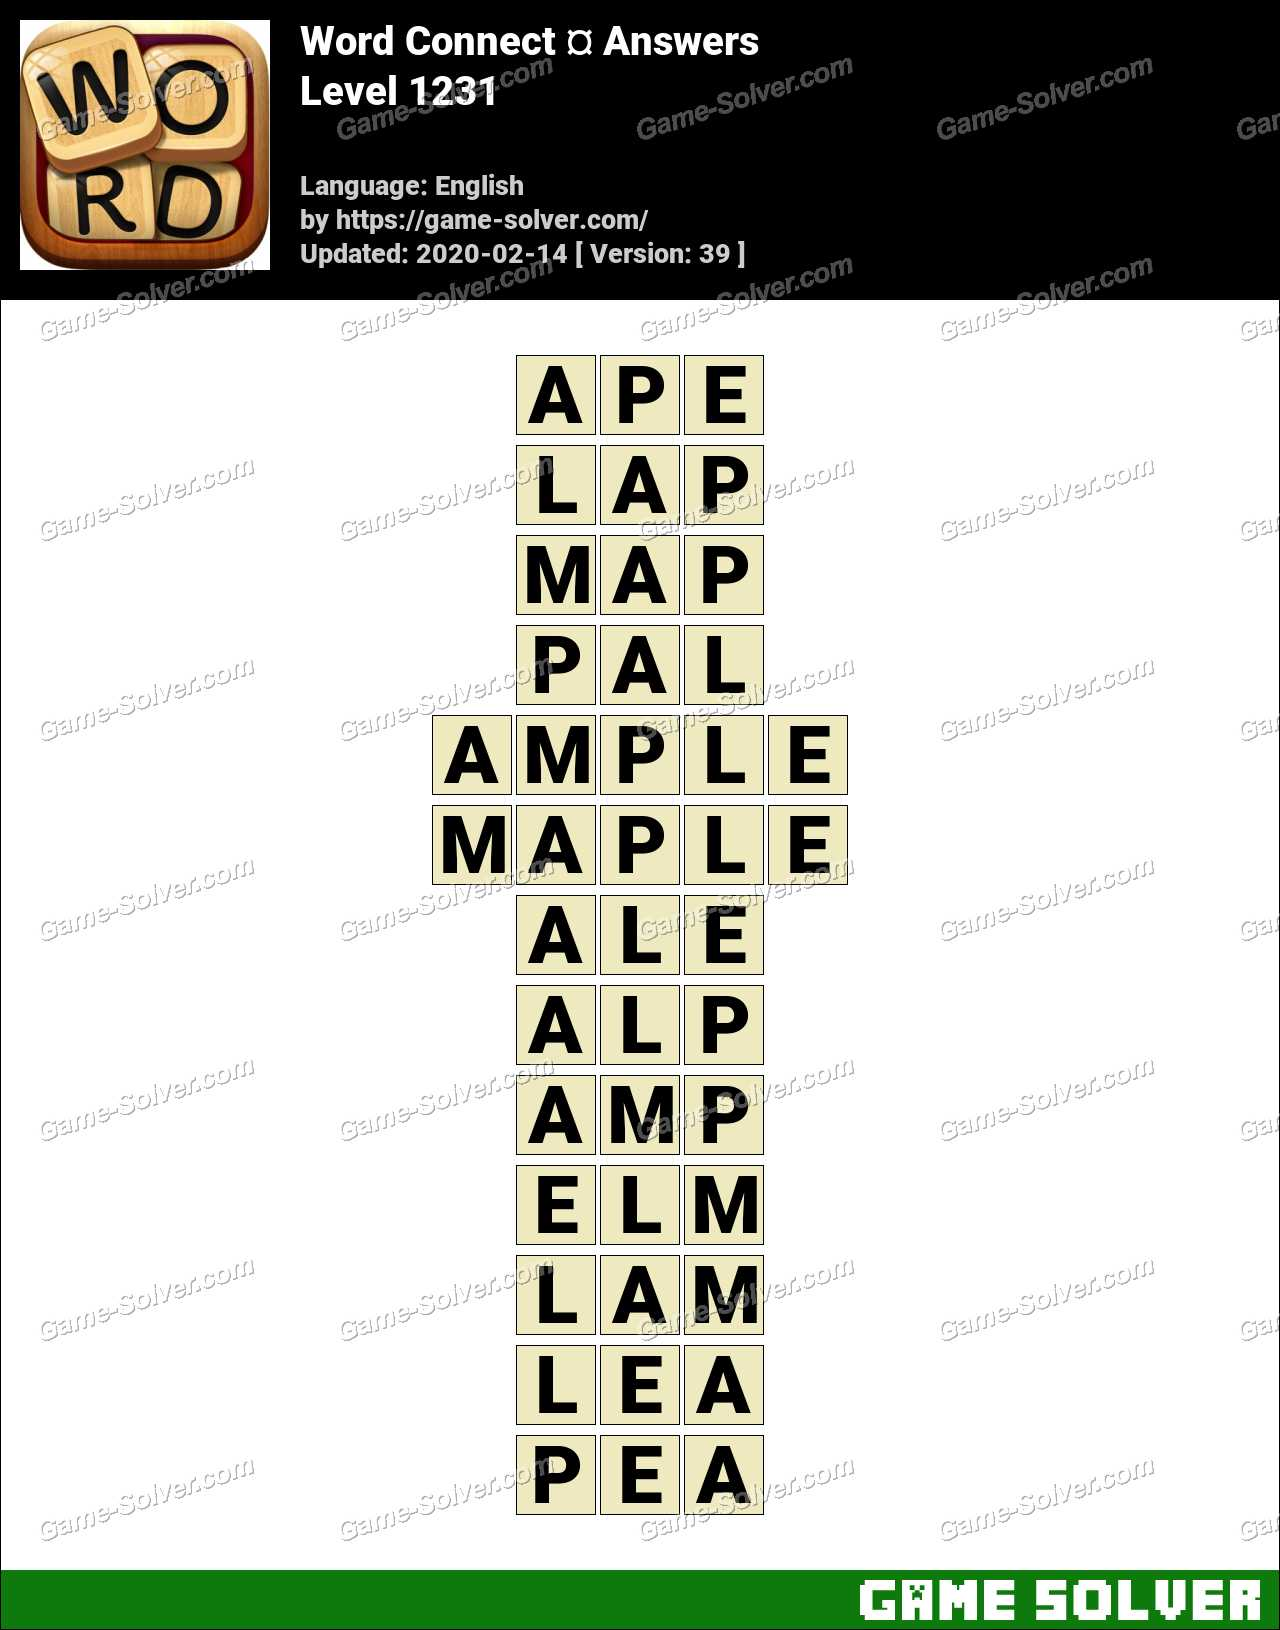 Word Connect Level 1231 Answers